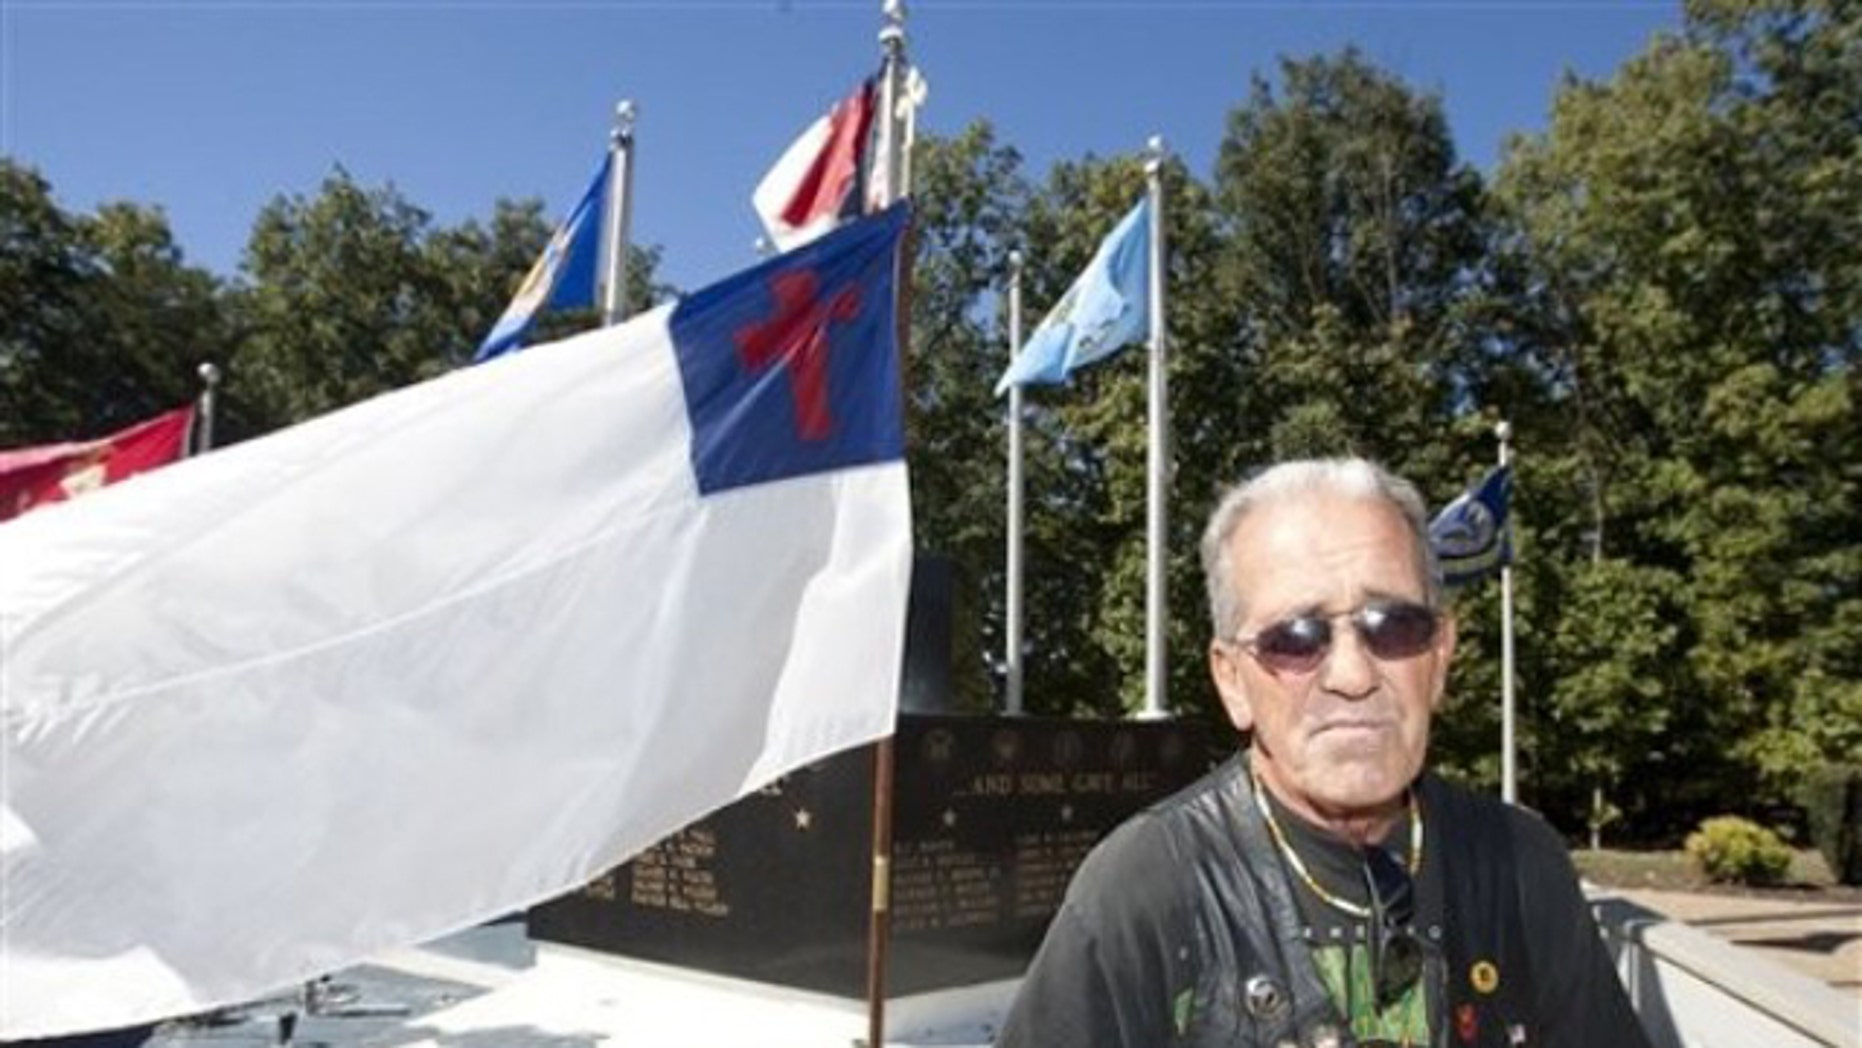 Oct. 16: Ray Martini, an Air Force Veteran, stands beside a Christian flag flying in front of the Veterans Memorial at Central Park in King, N.C. (AP).